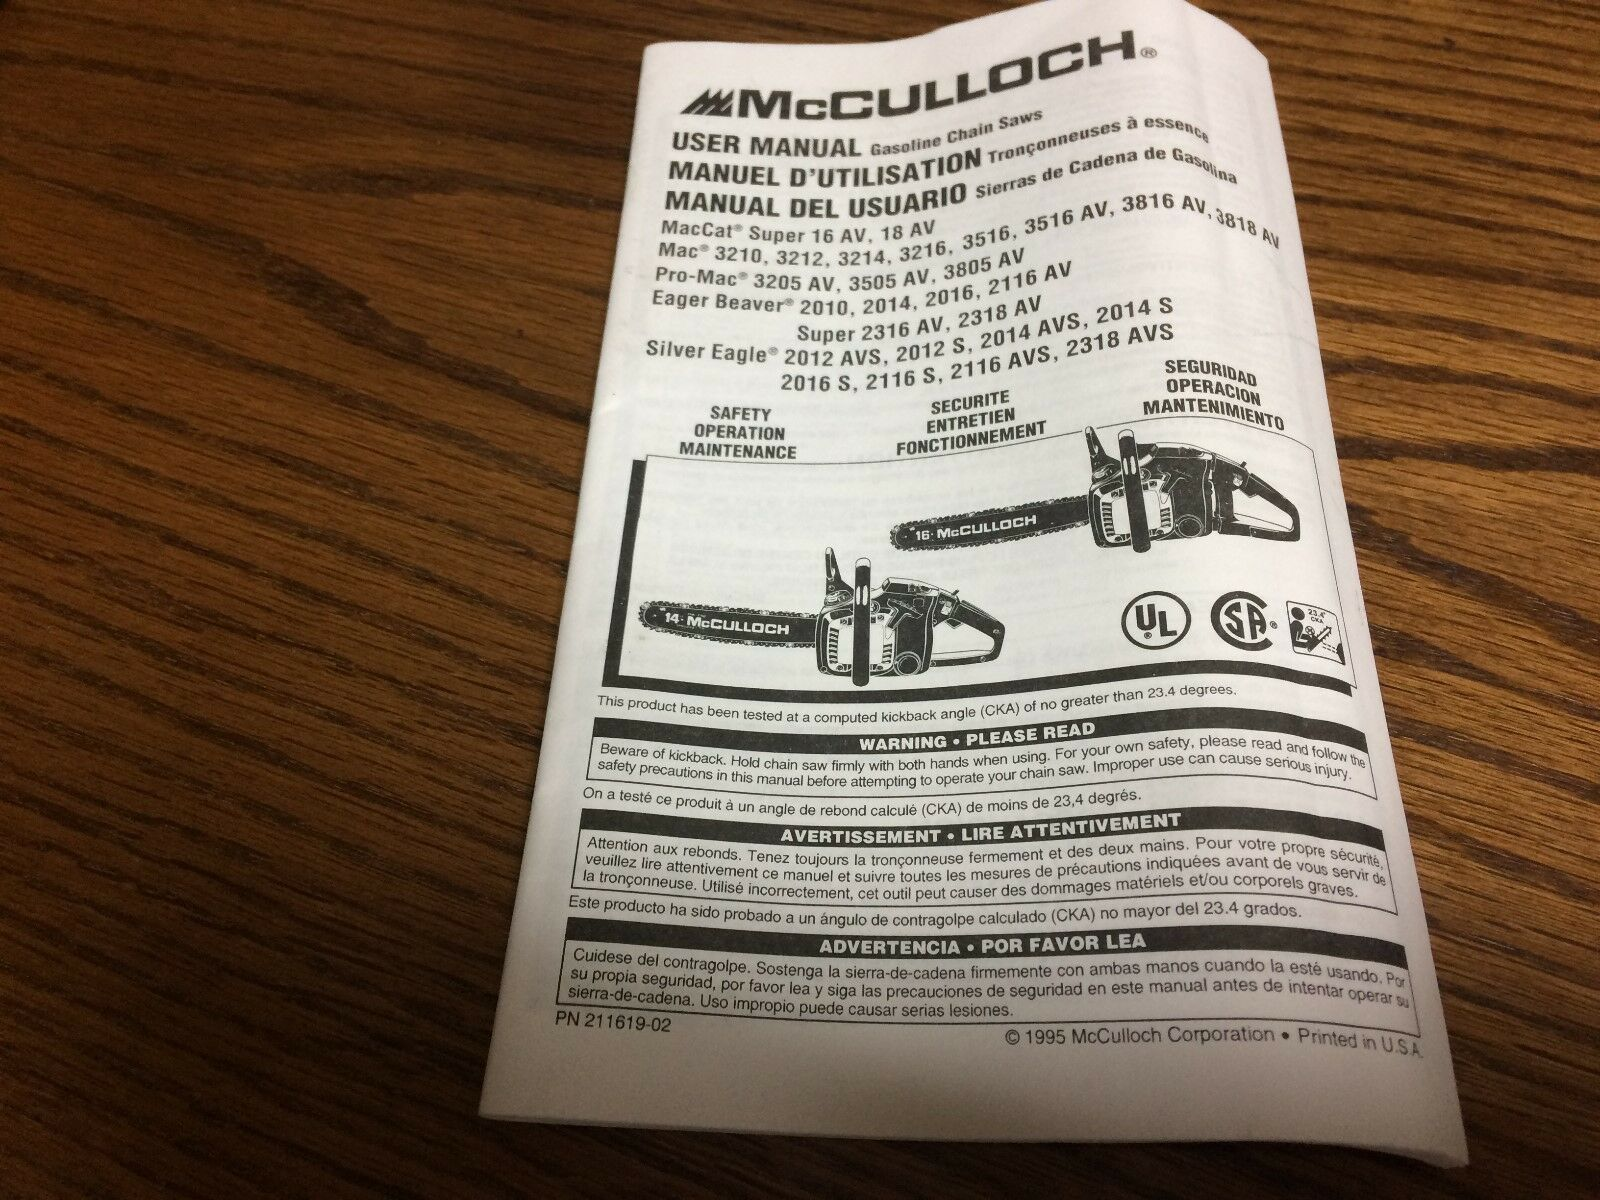 McCULLOCH CHAINSAW USER MANUAL - 3200 3500 3800 EAGER BEAVER SILVER EAGLE 1  of 2 See More